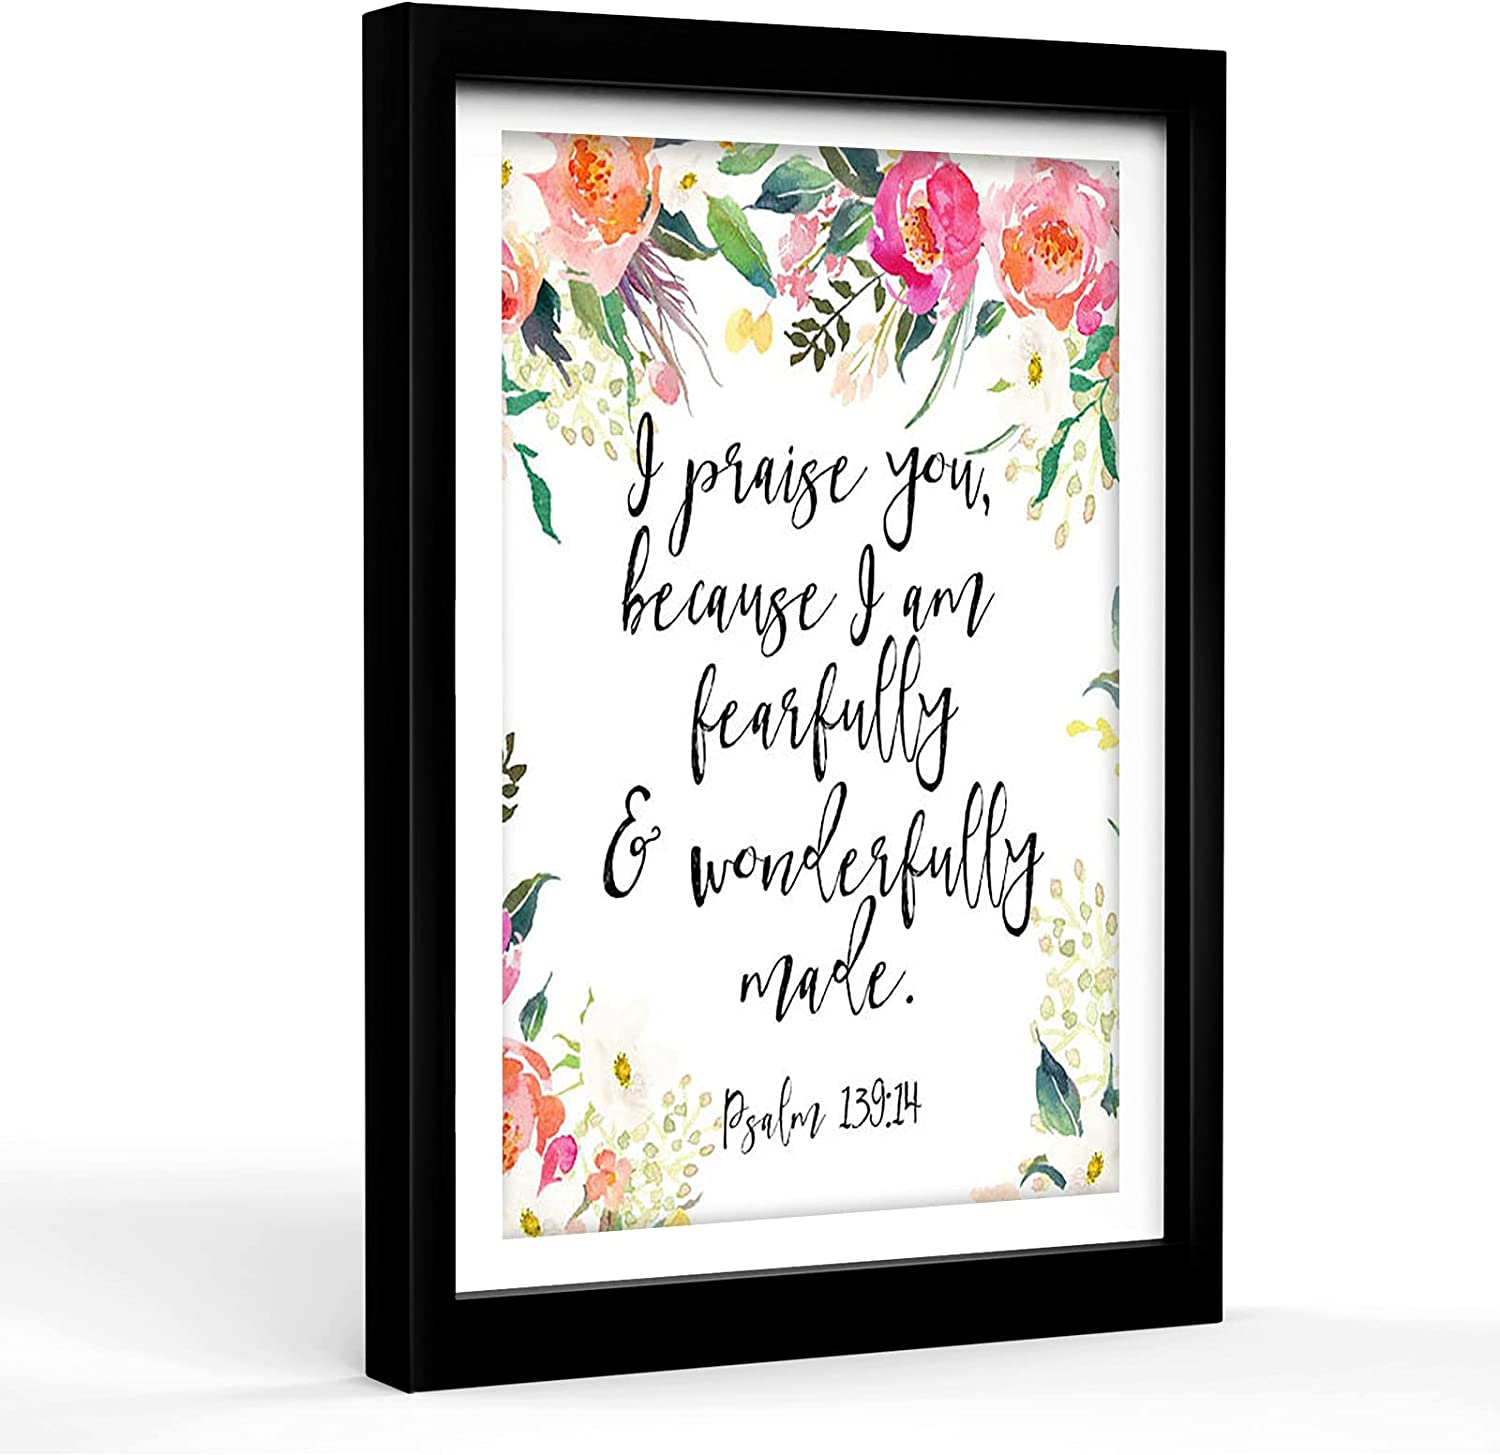 WALL DECOR FOR BEDROOM Popular popular AESTHETIC and Trust fearfully wonderfully made